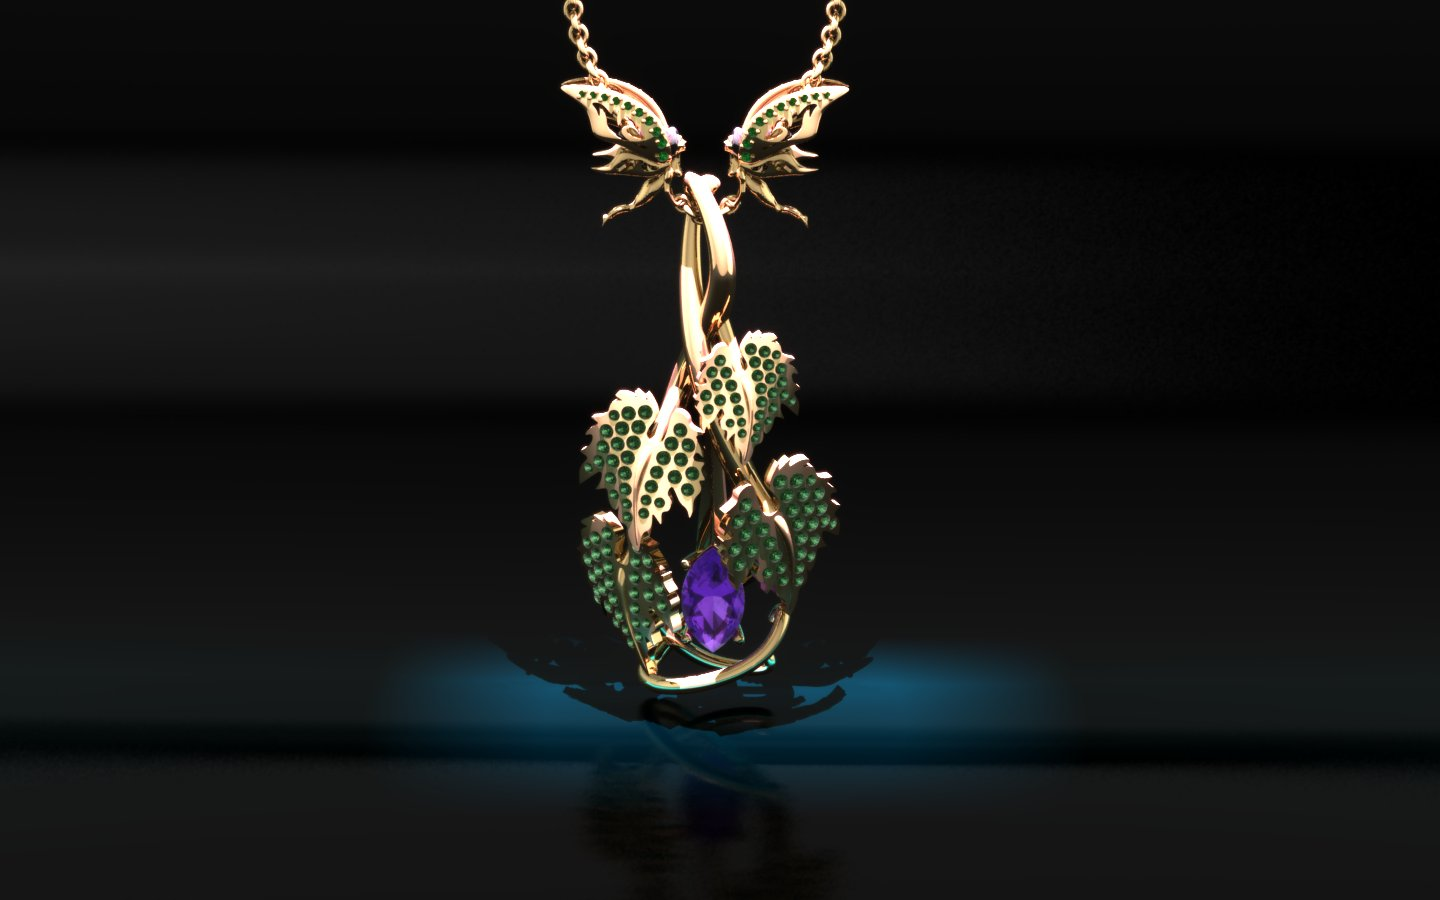 Award wining jewellery design CAD model